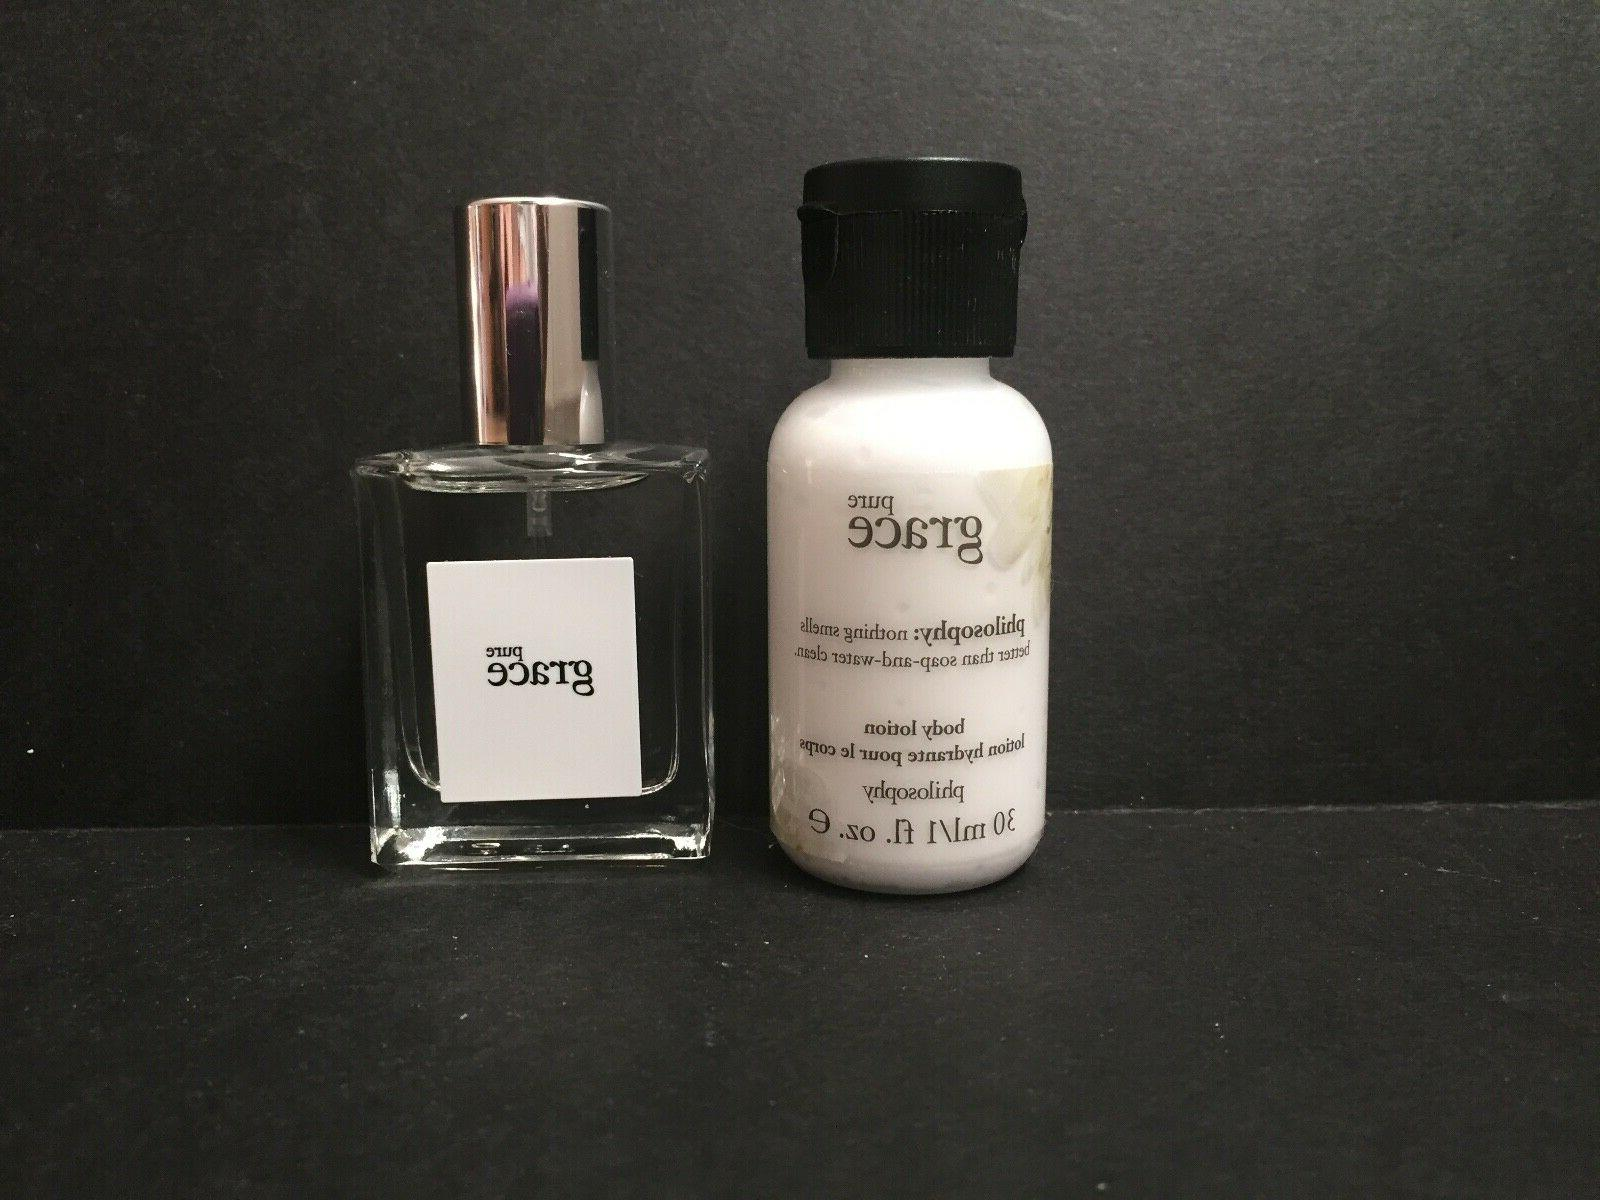 pure grace body lotion and spray fragrance